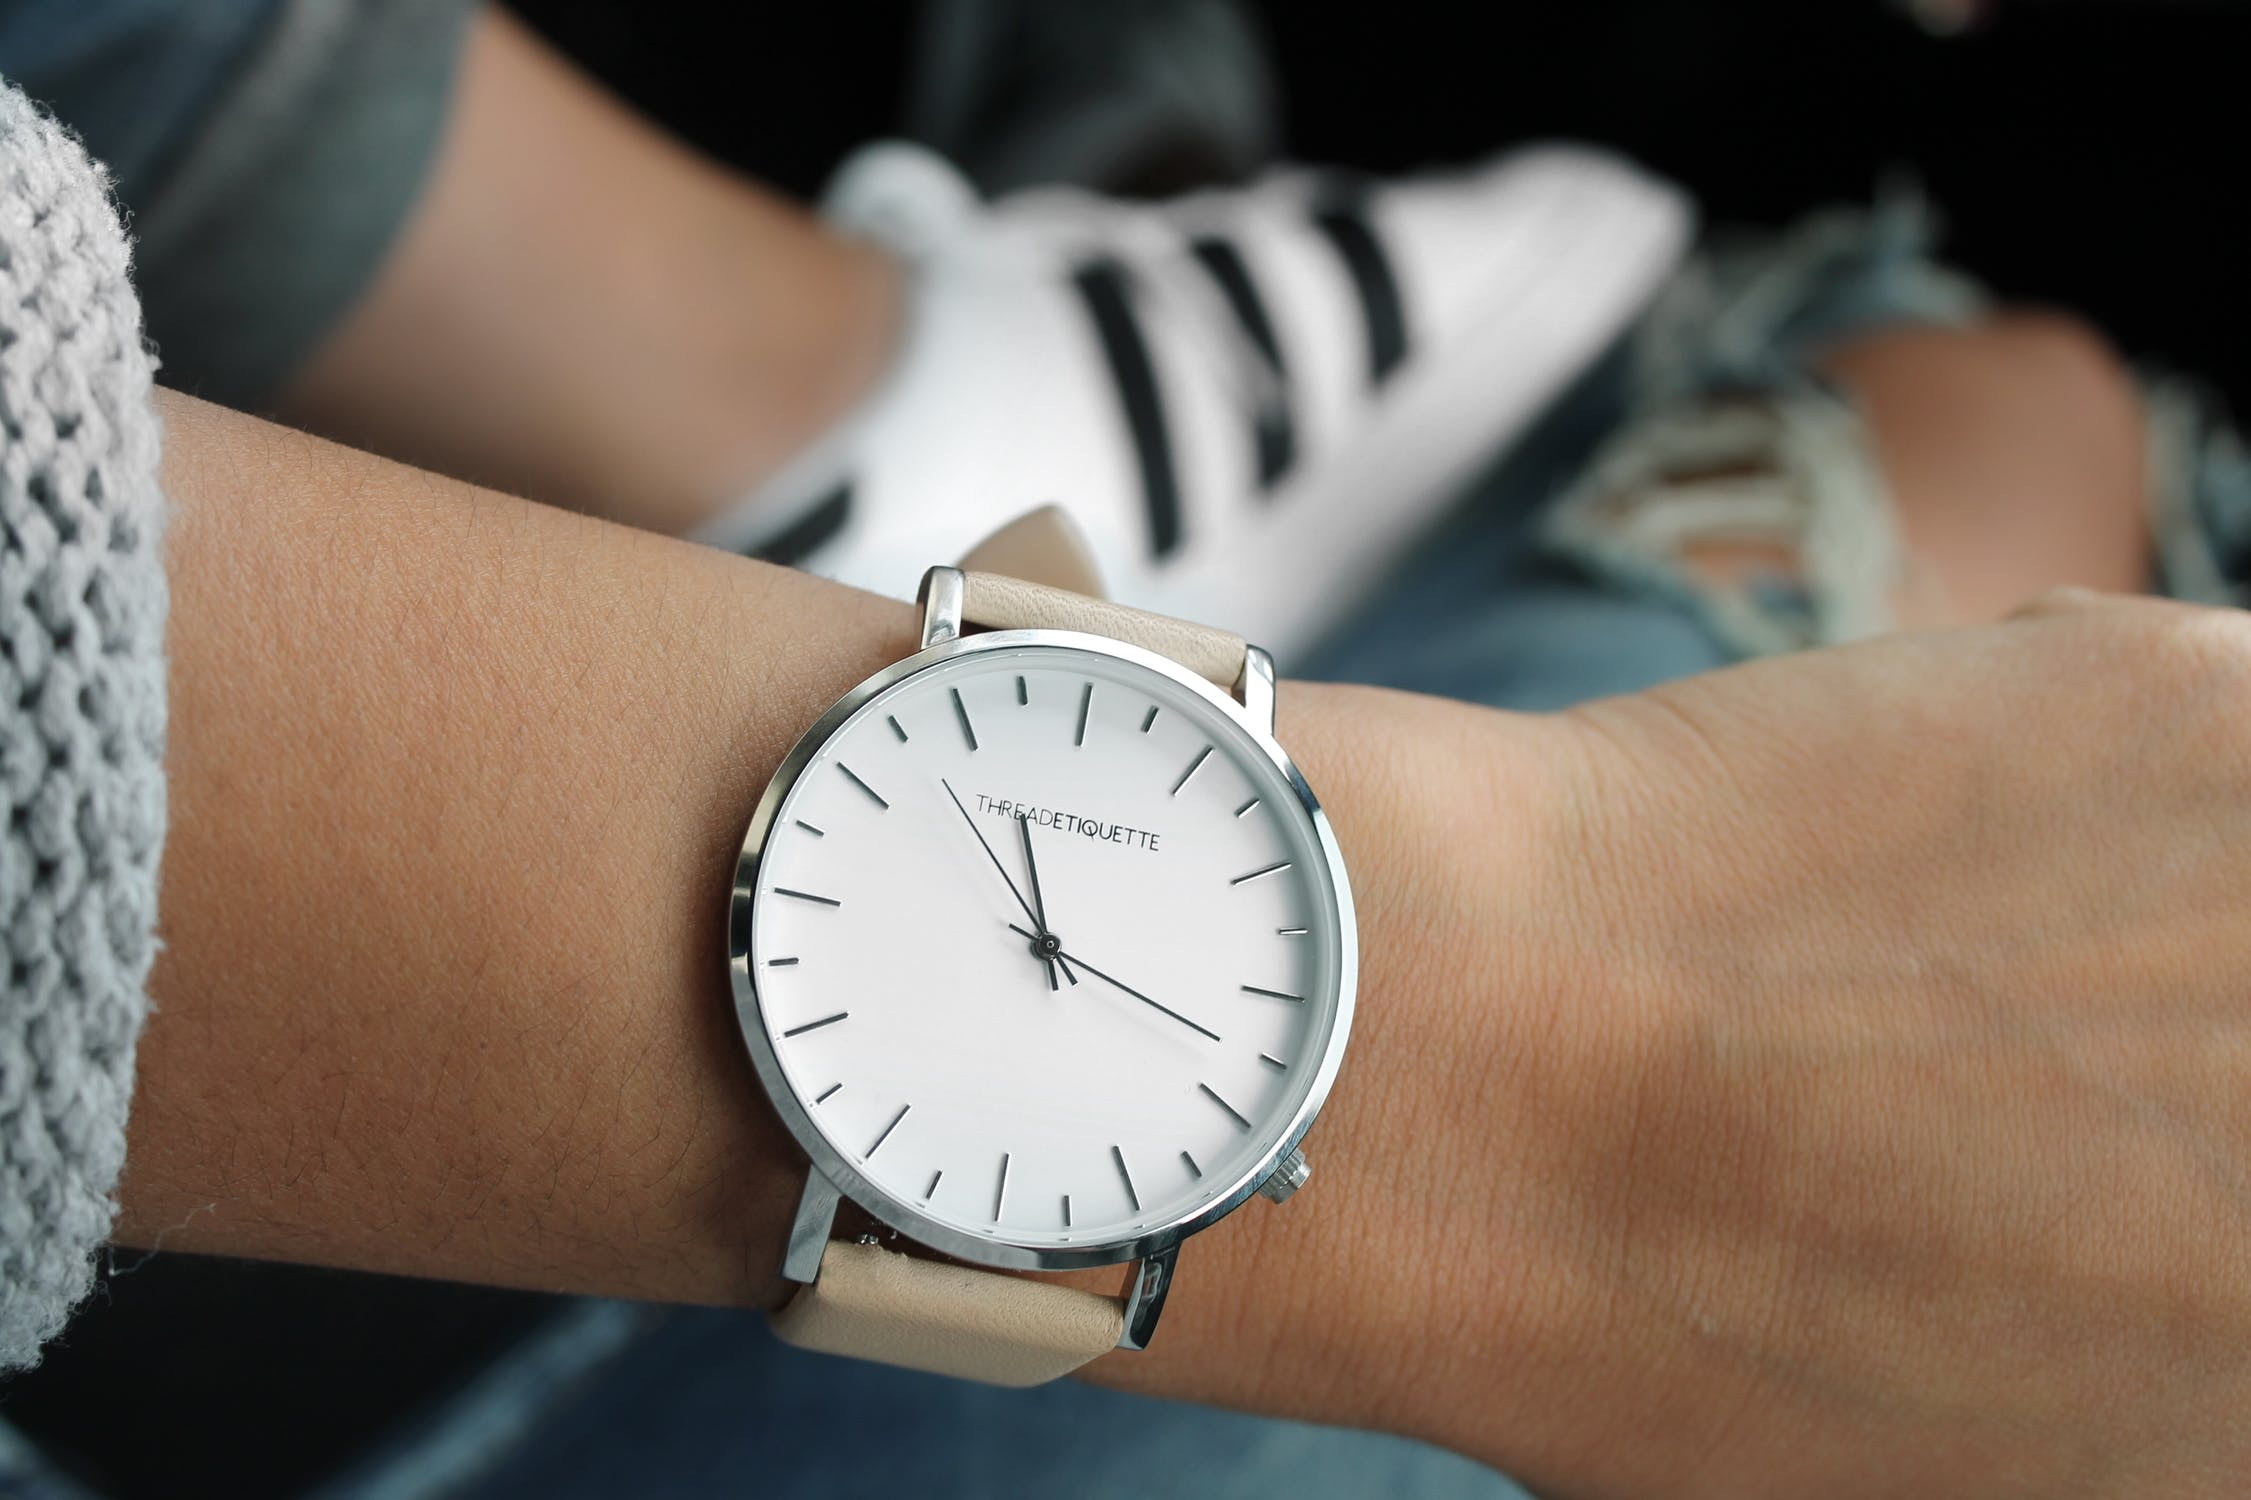 Fashion Understatement: How To Wear Minimalist Watches